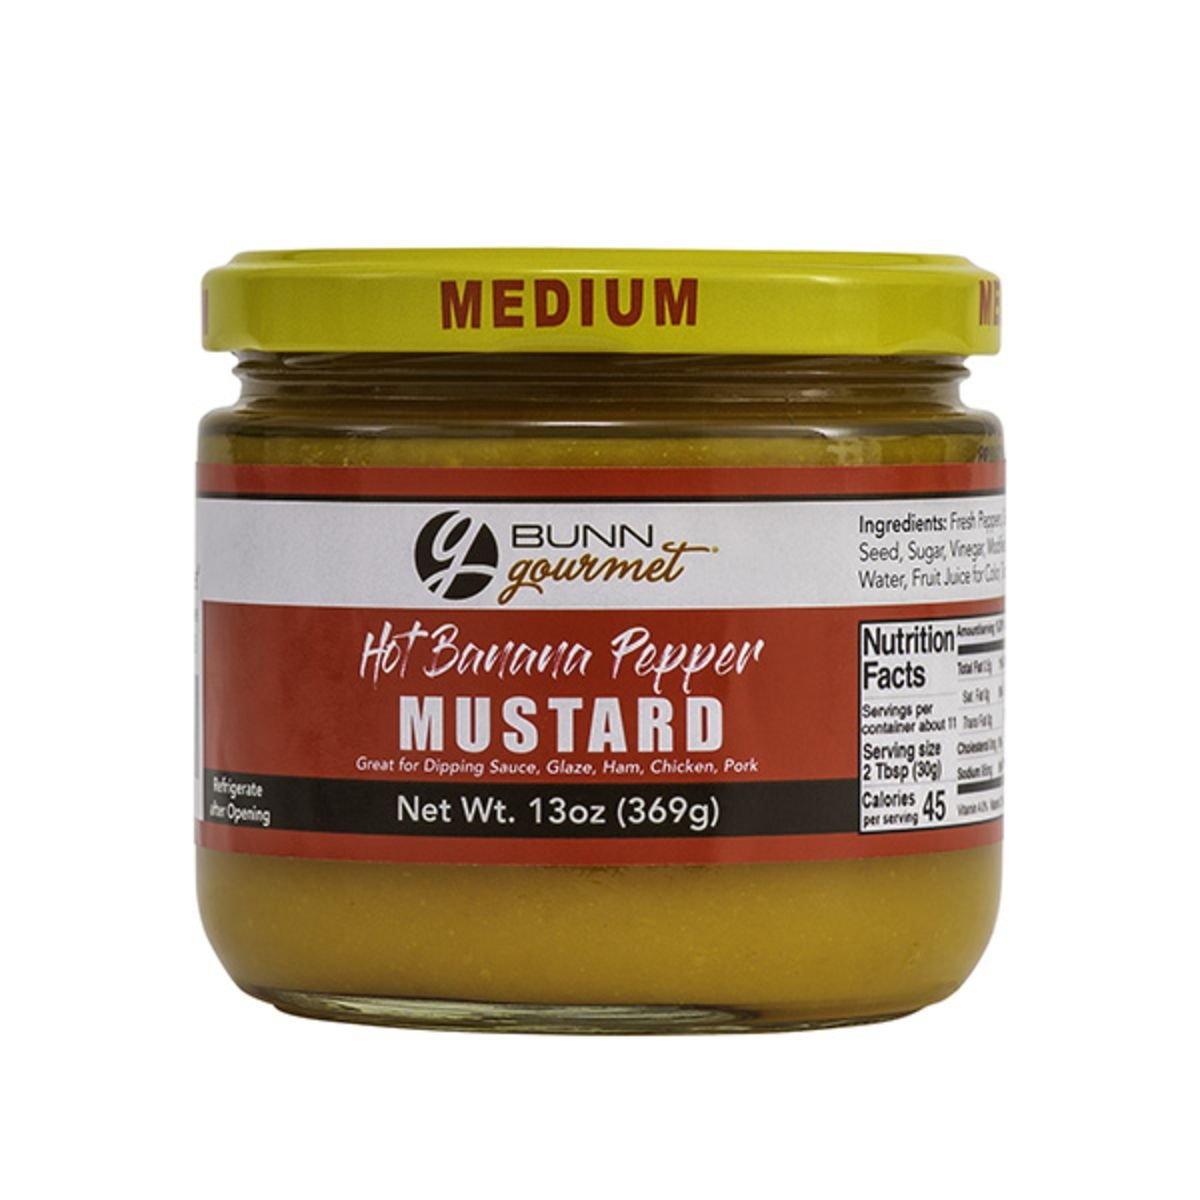 BUNN Gourmet Hot Banana Pepper Mustard